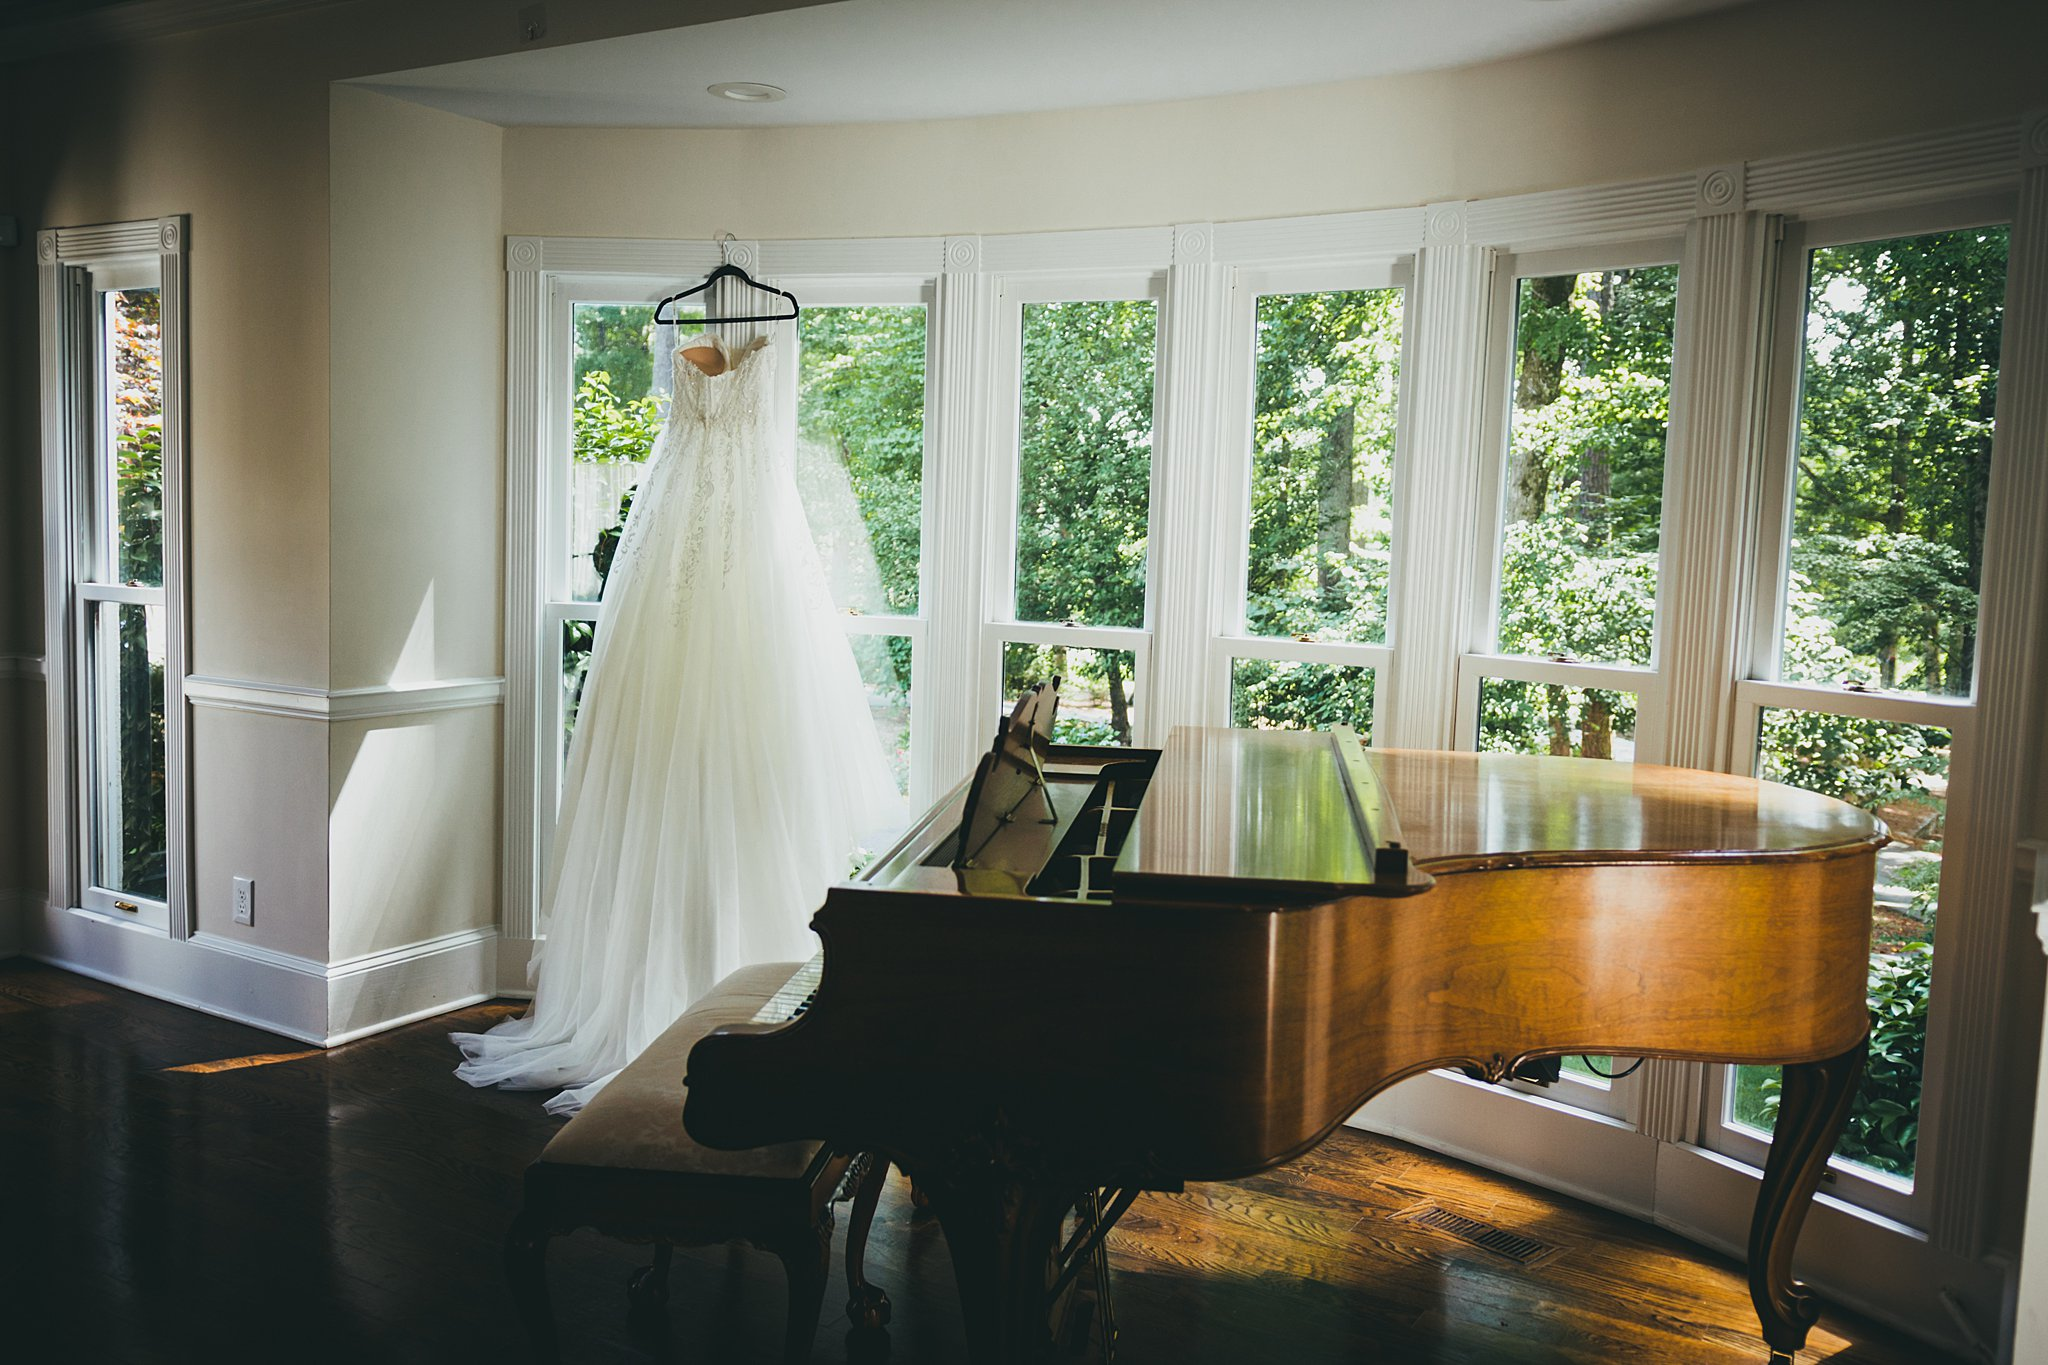 Little River Farms Wedding Milton, GA Atlanta Wedding Photographers Wedding dress and Piano